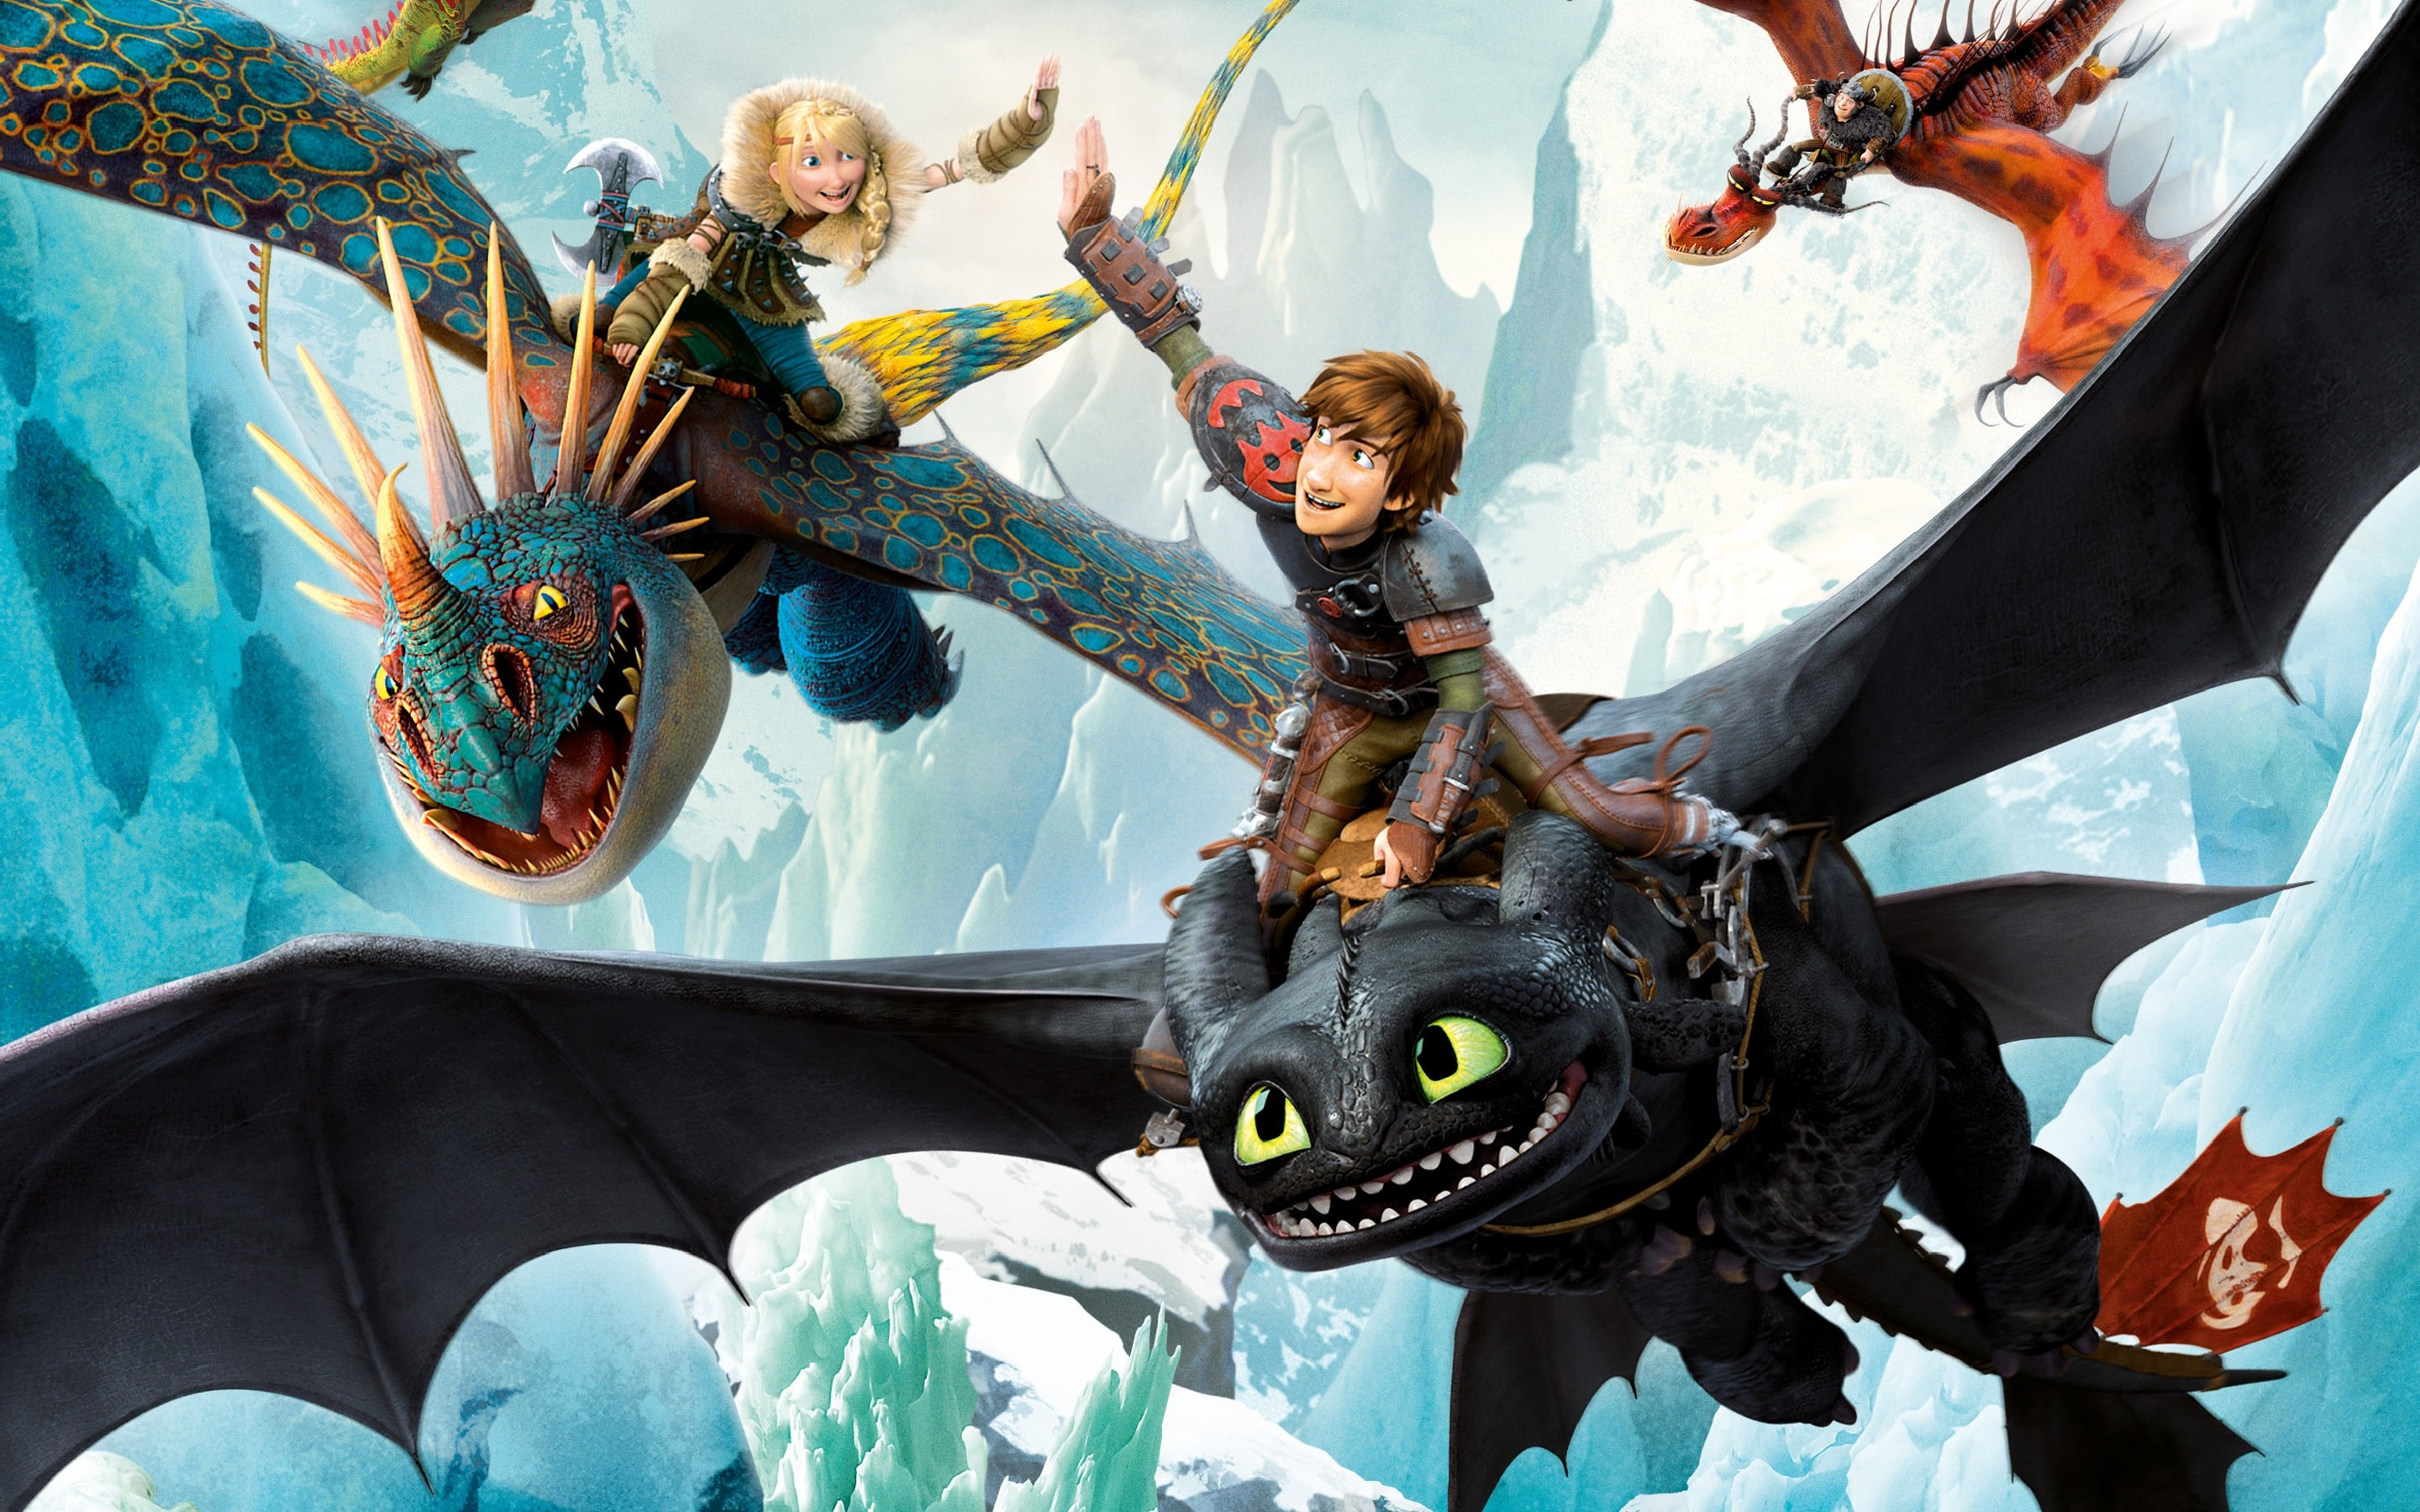 Res: 2880x1800, How To Train Your Dragon Wallpapers 22 - 2880 X 1800